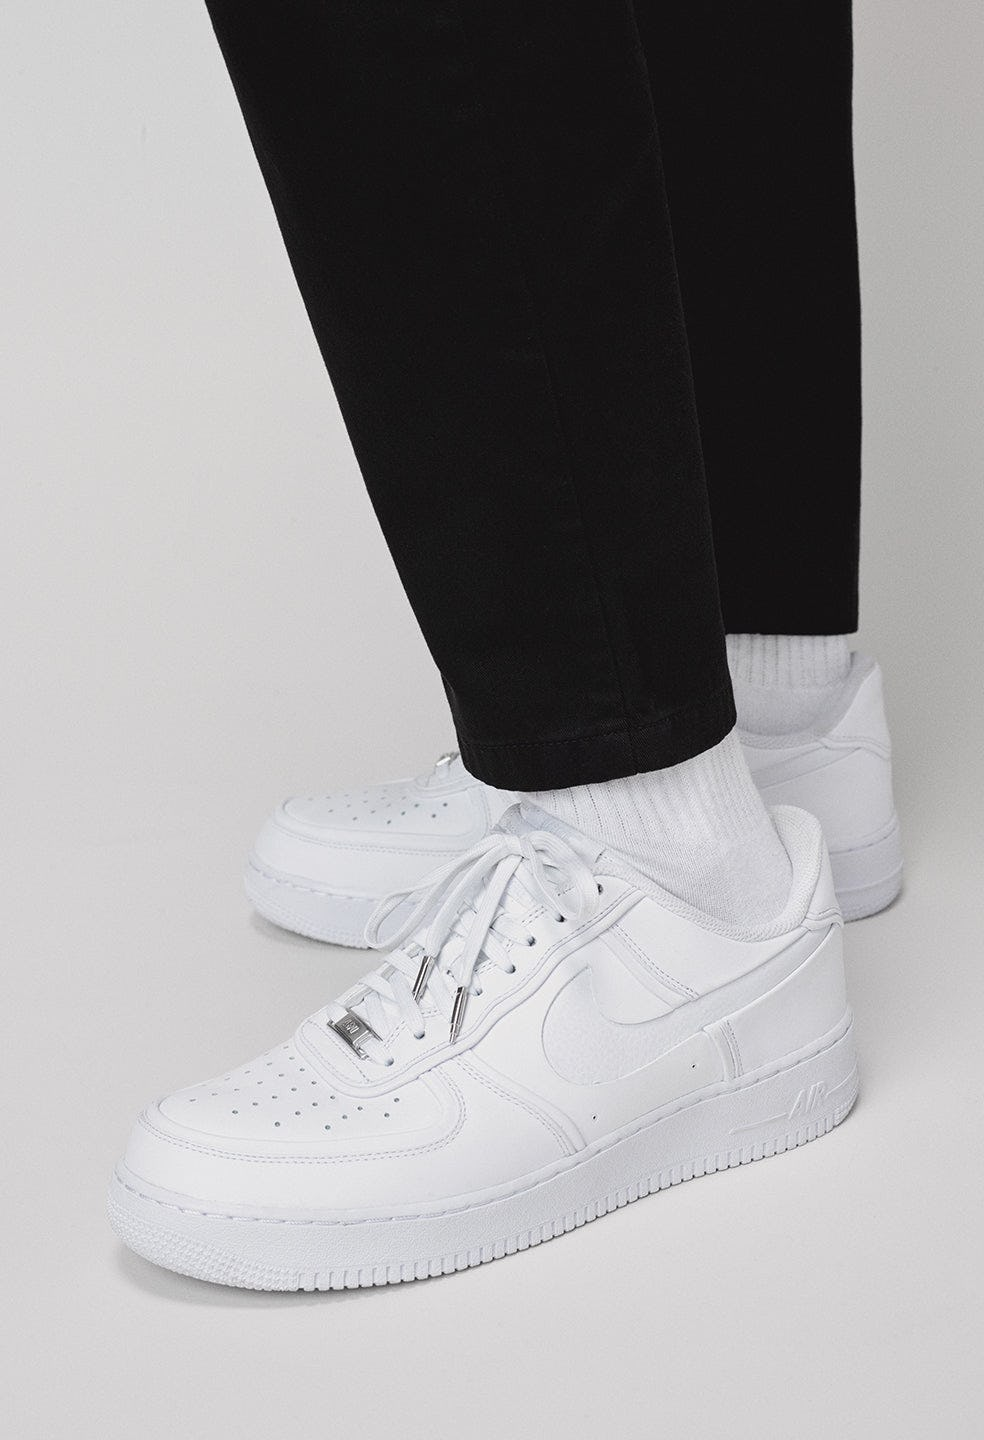 John Elliott X Nike Air Force 1 White